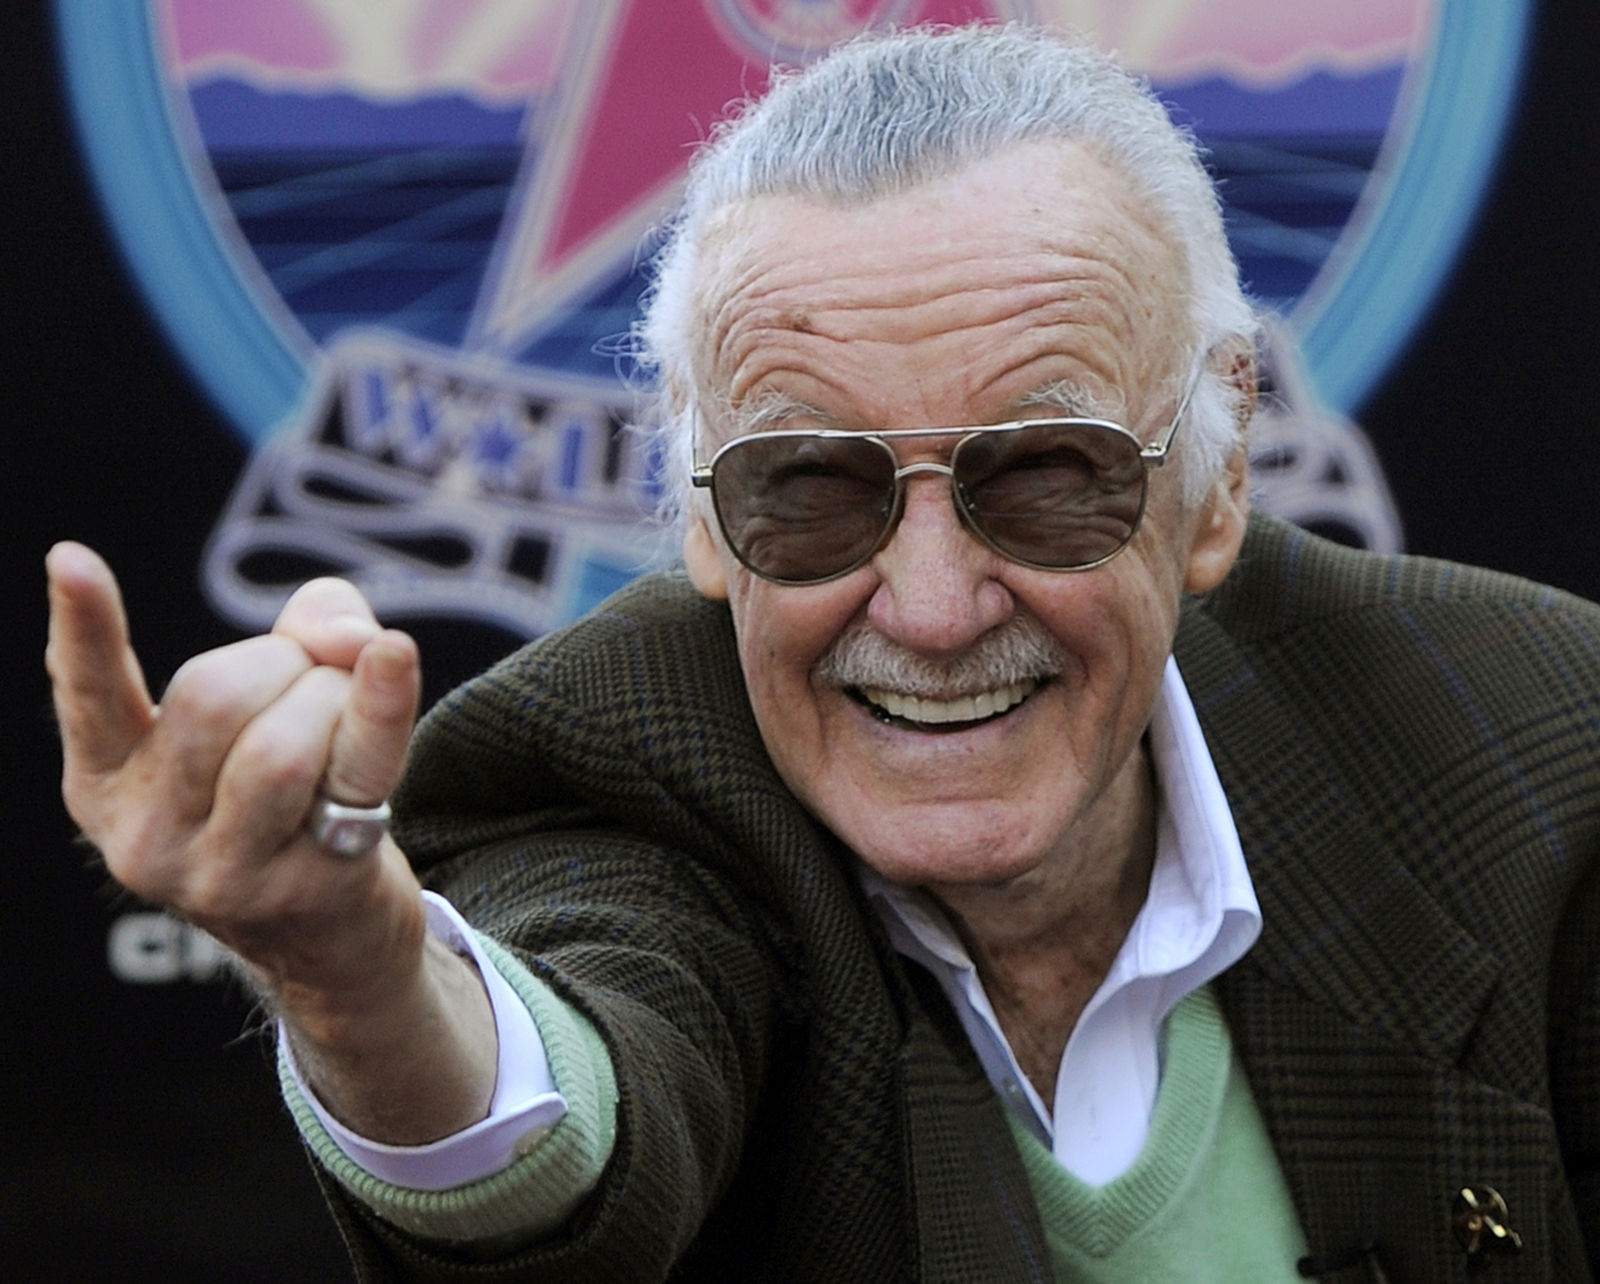 FILE - In this Jan. 4, 2011 file photo, Comic book creator Stan Lee strikes the Spiderman pose as he poses after receiving a star on the Hollywood Walk of Fame in Los Angeles. A former business manager of Stan Lee has been arrested on elder abuse charges involving the late comic book icon. (AP Photo/Chris Pizzello, File)